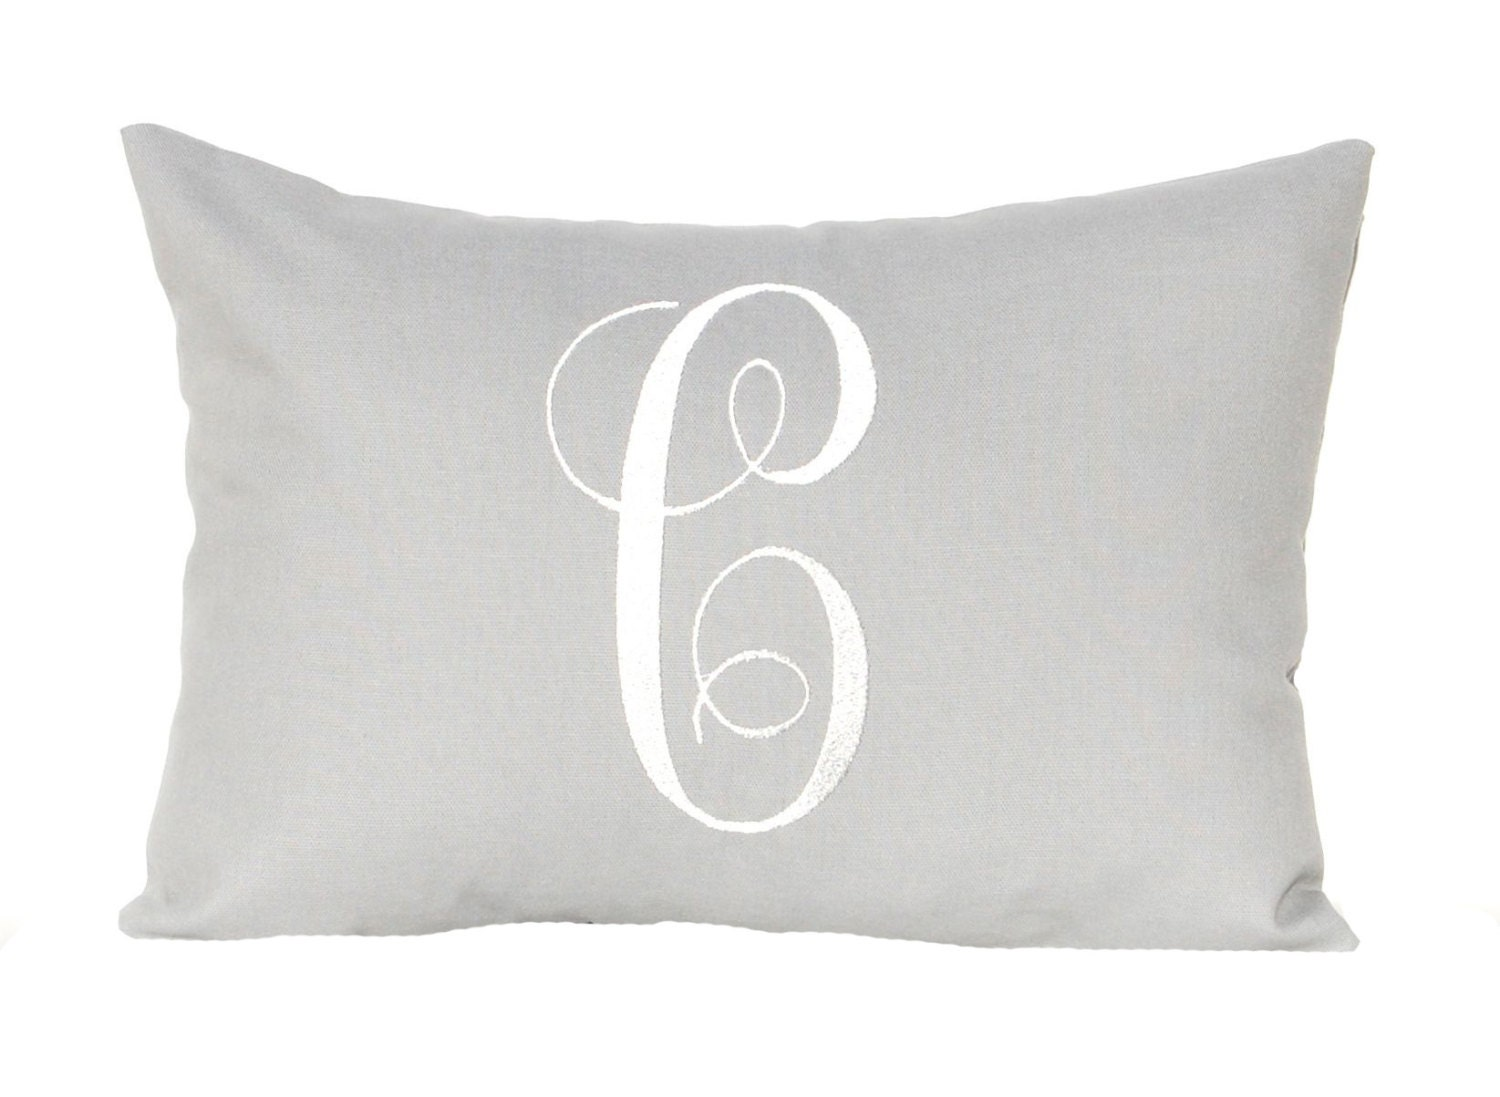 Monogrammed Pillow Cover 18 X 18 Personalized Gift Pillow